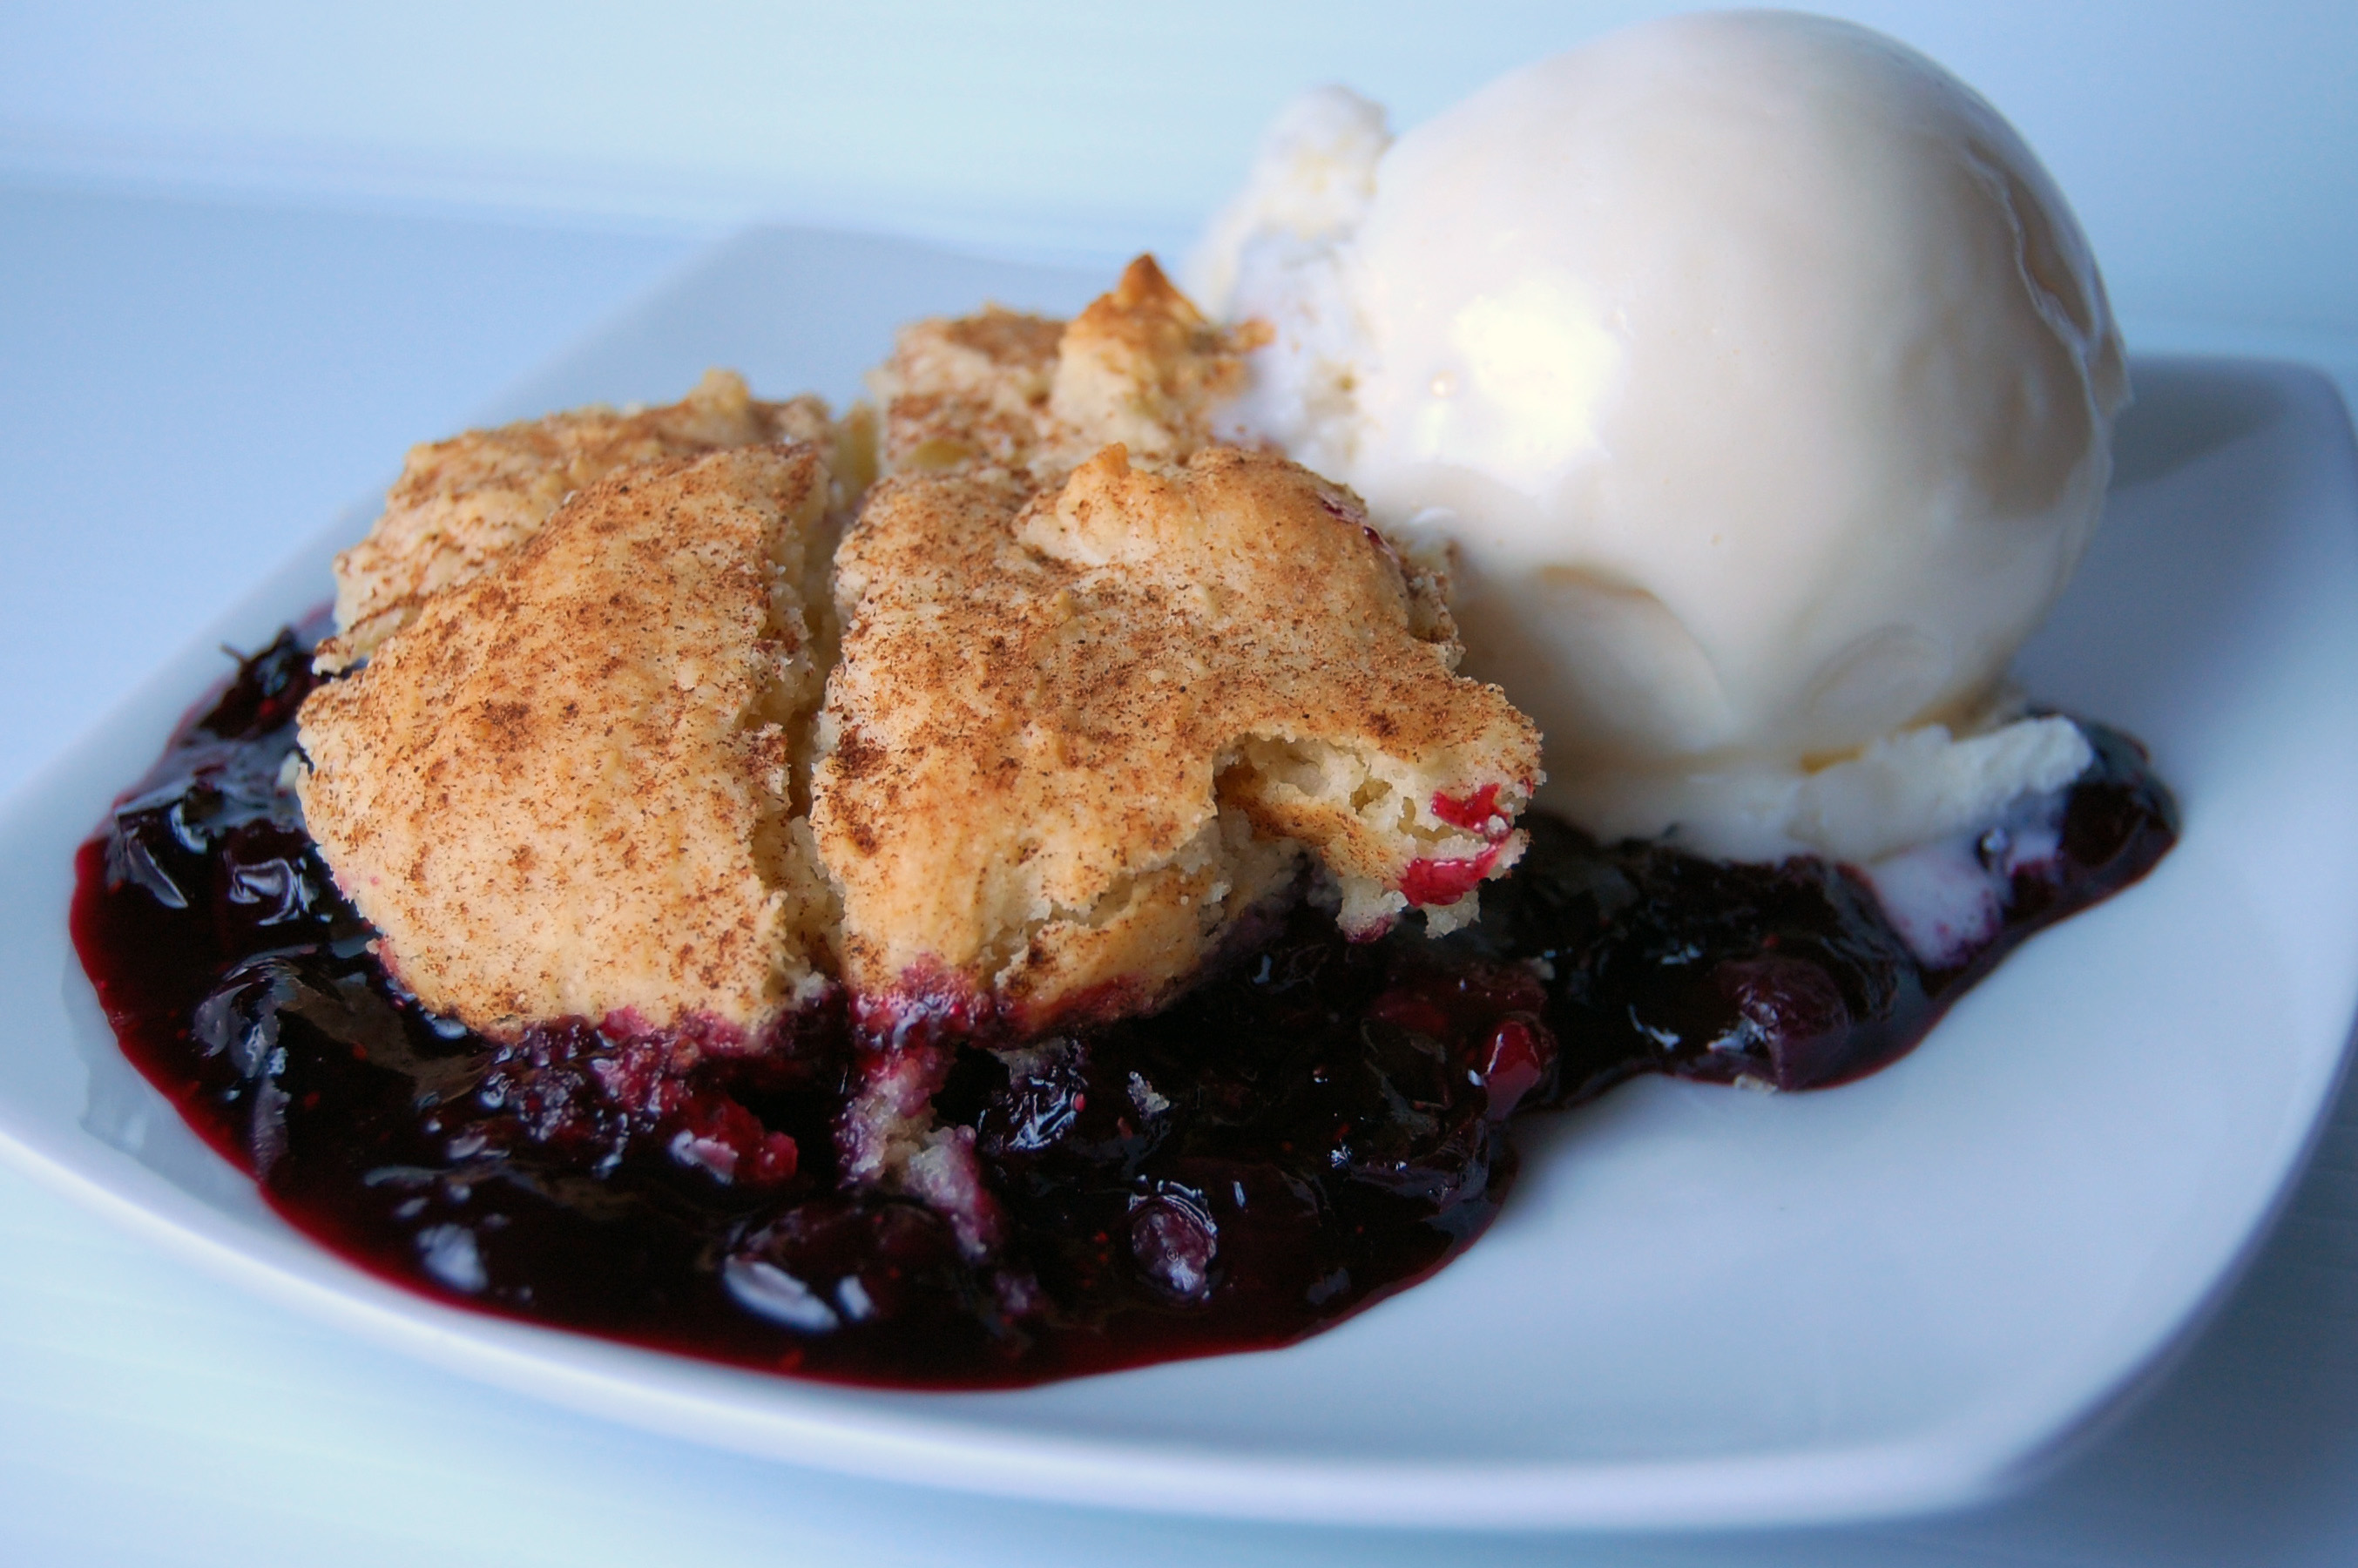 Blueberry-Lemon Cobbler